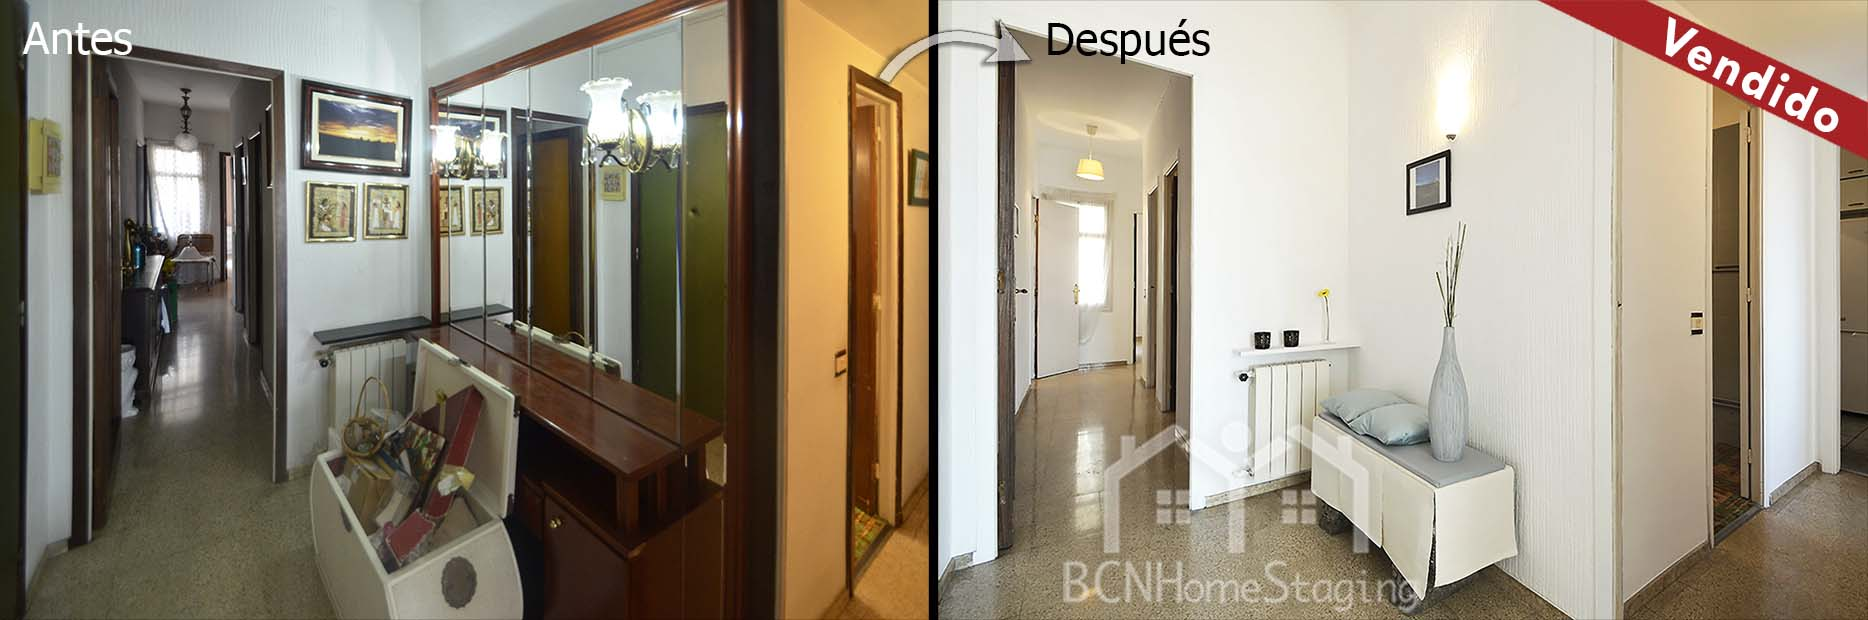 home-staging-barcelona-salon-antes-despues